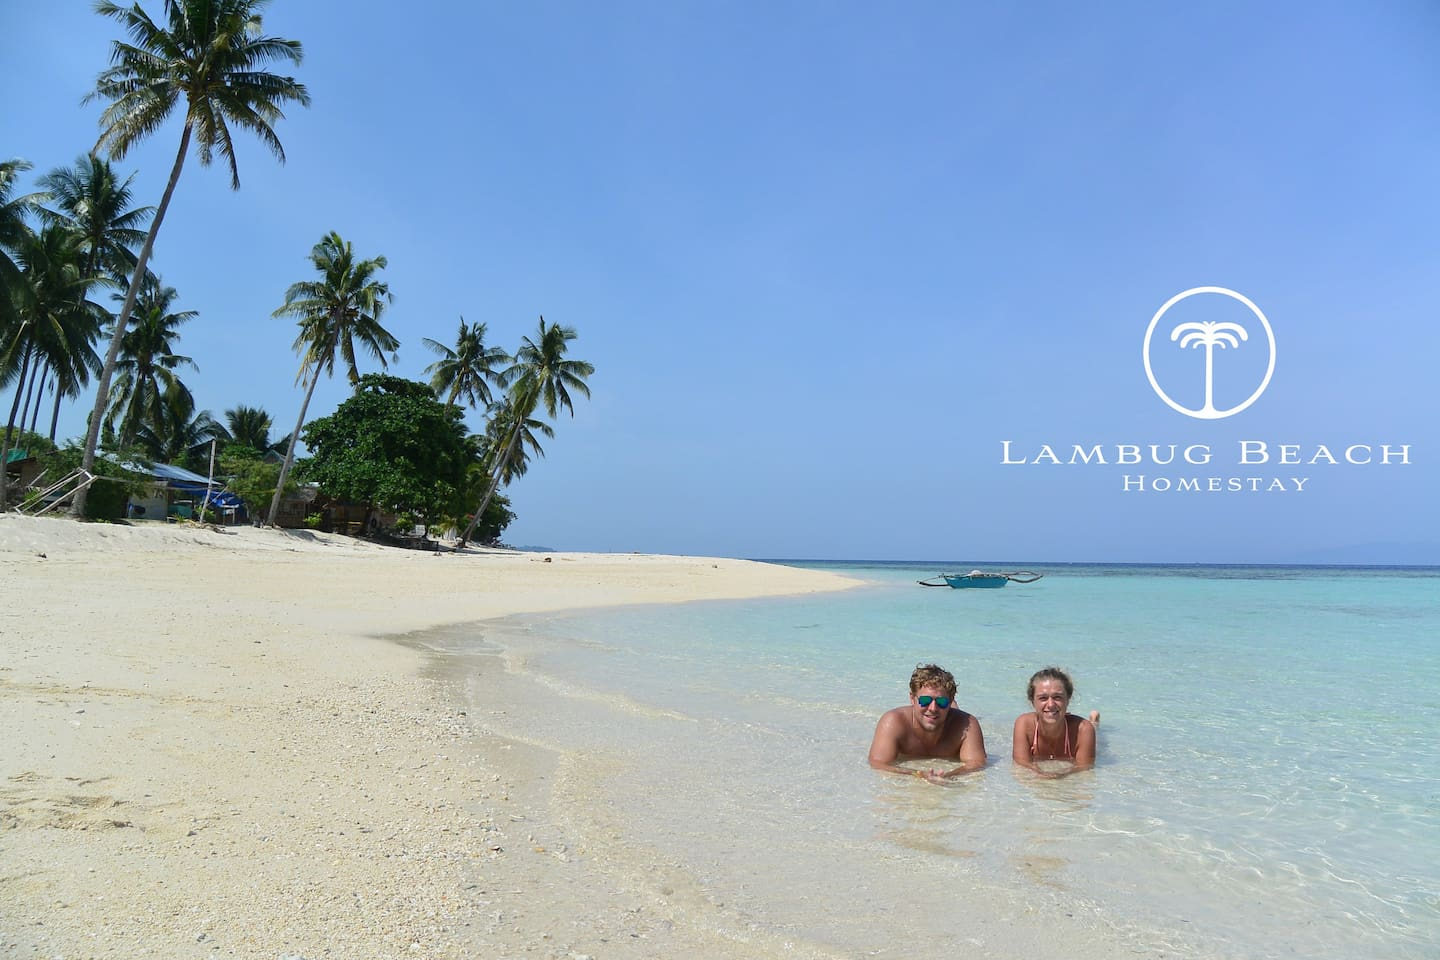 It's more fun at Lambug Beach and here you will find your peace